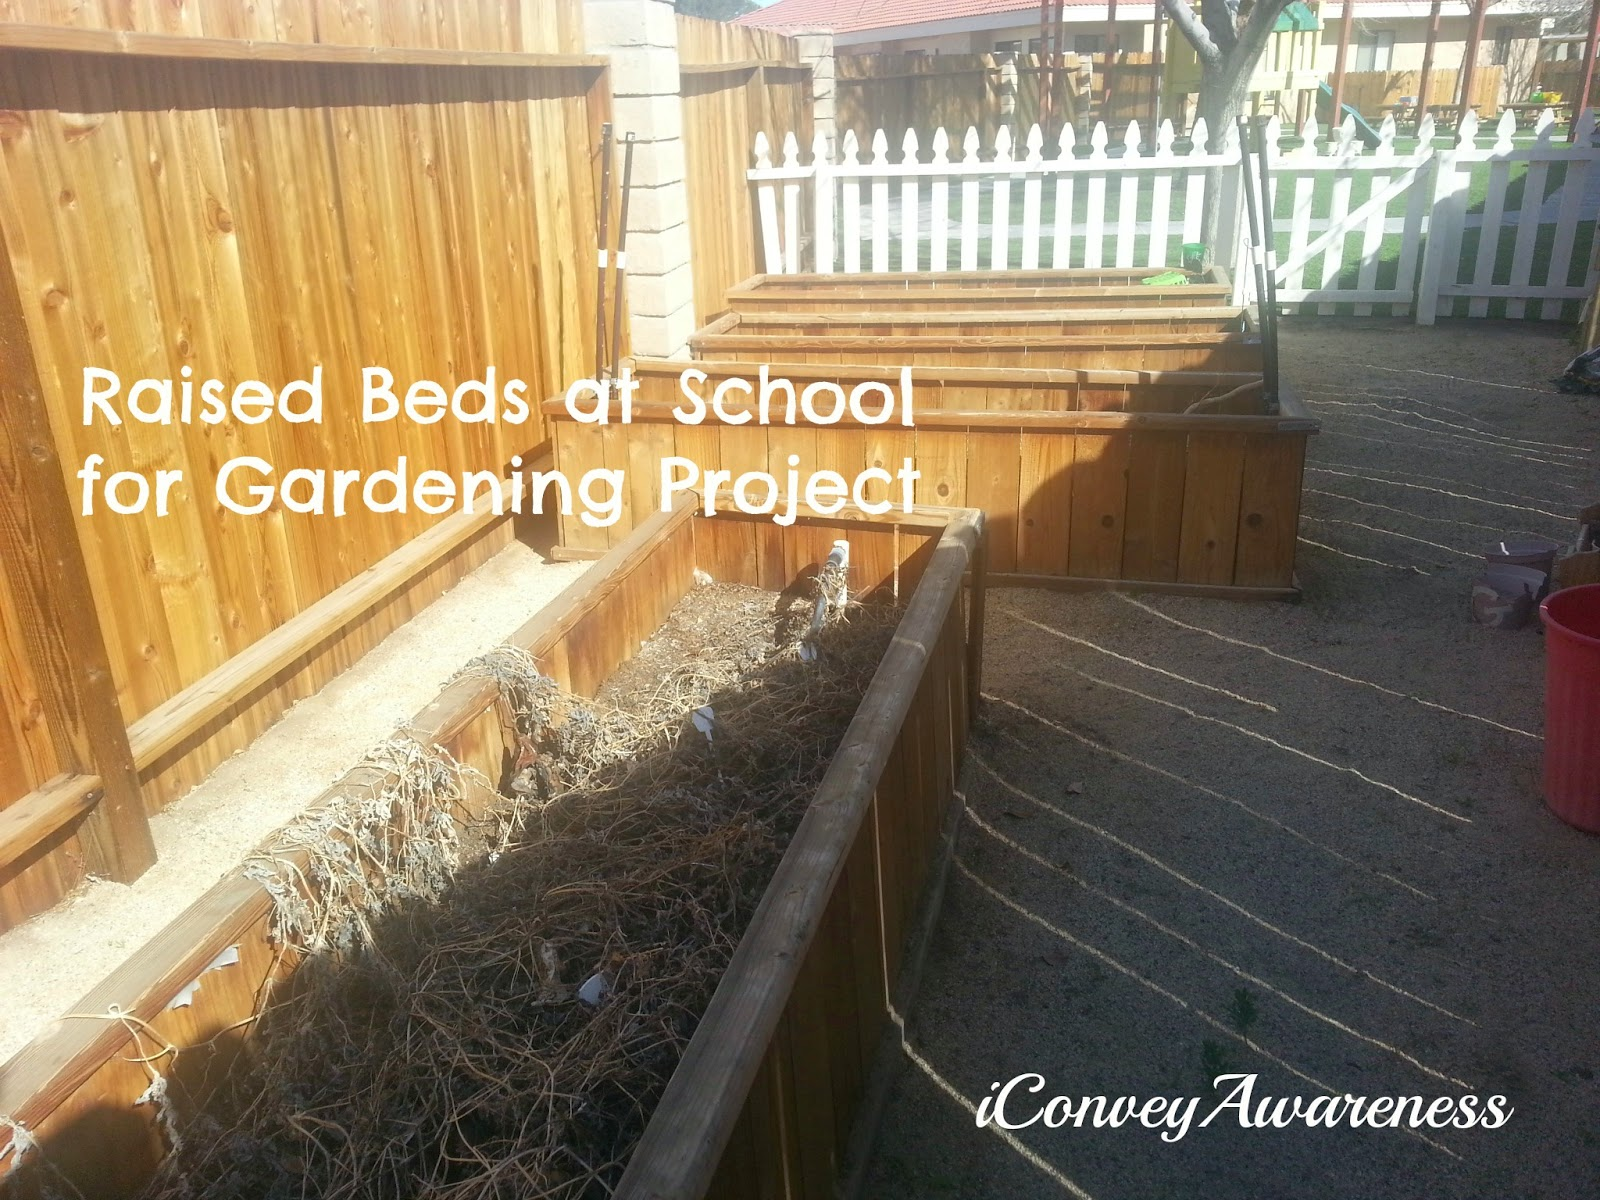 Convey Awareness | Raised Beds - Garden Project at a Montessori